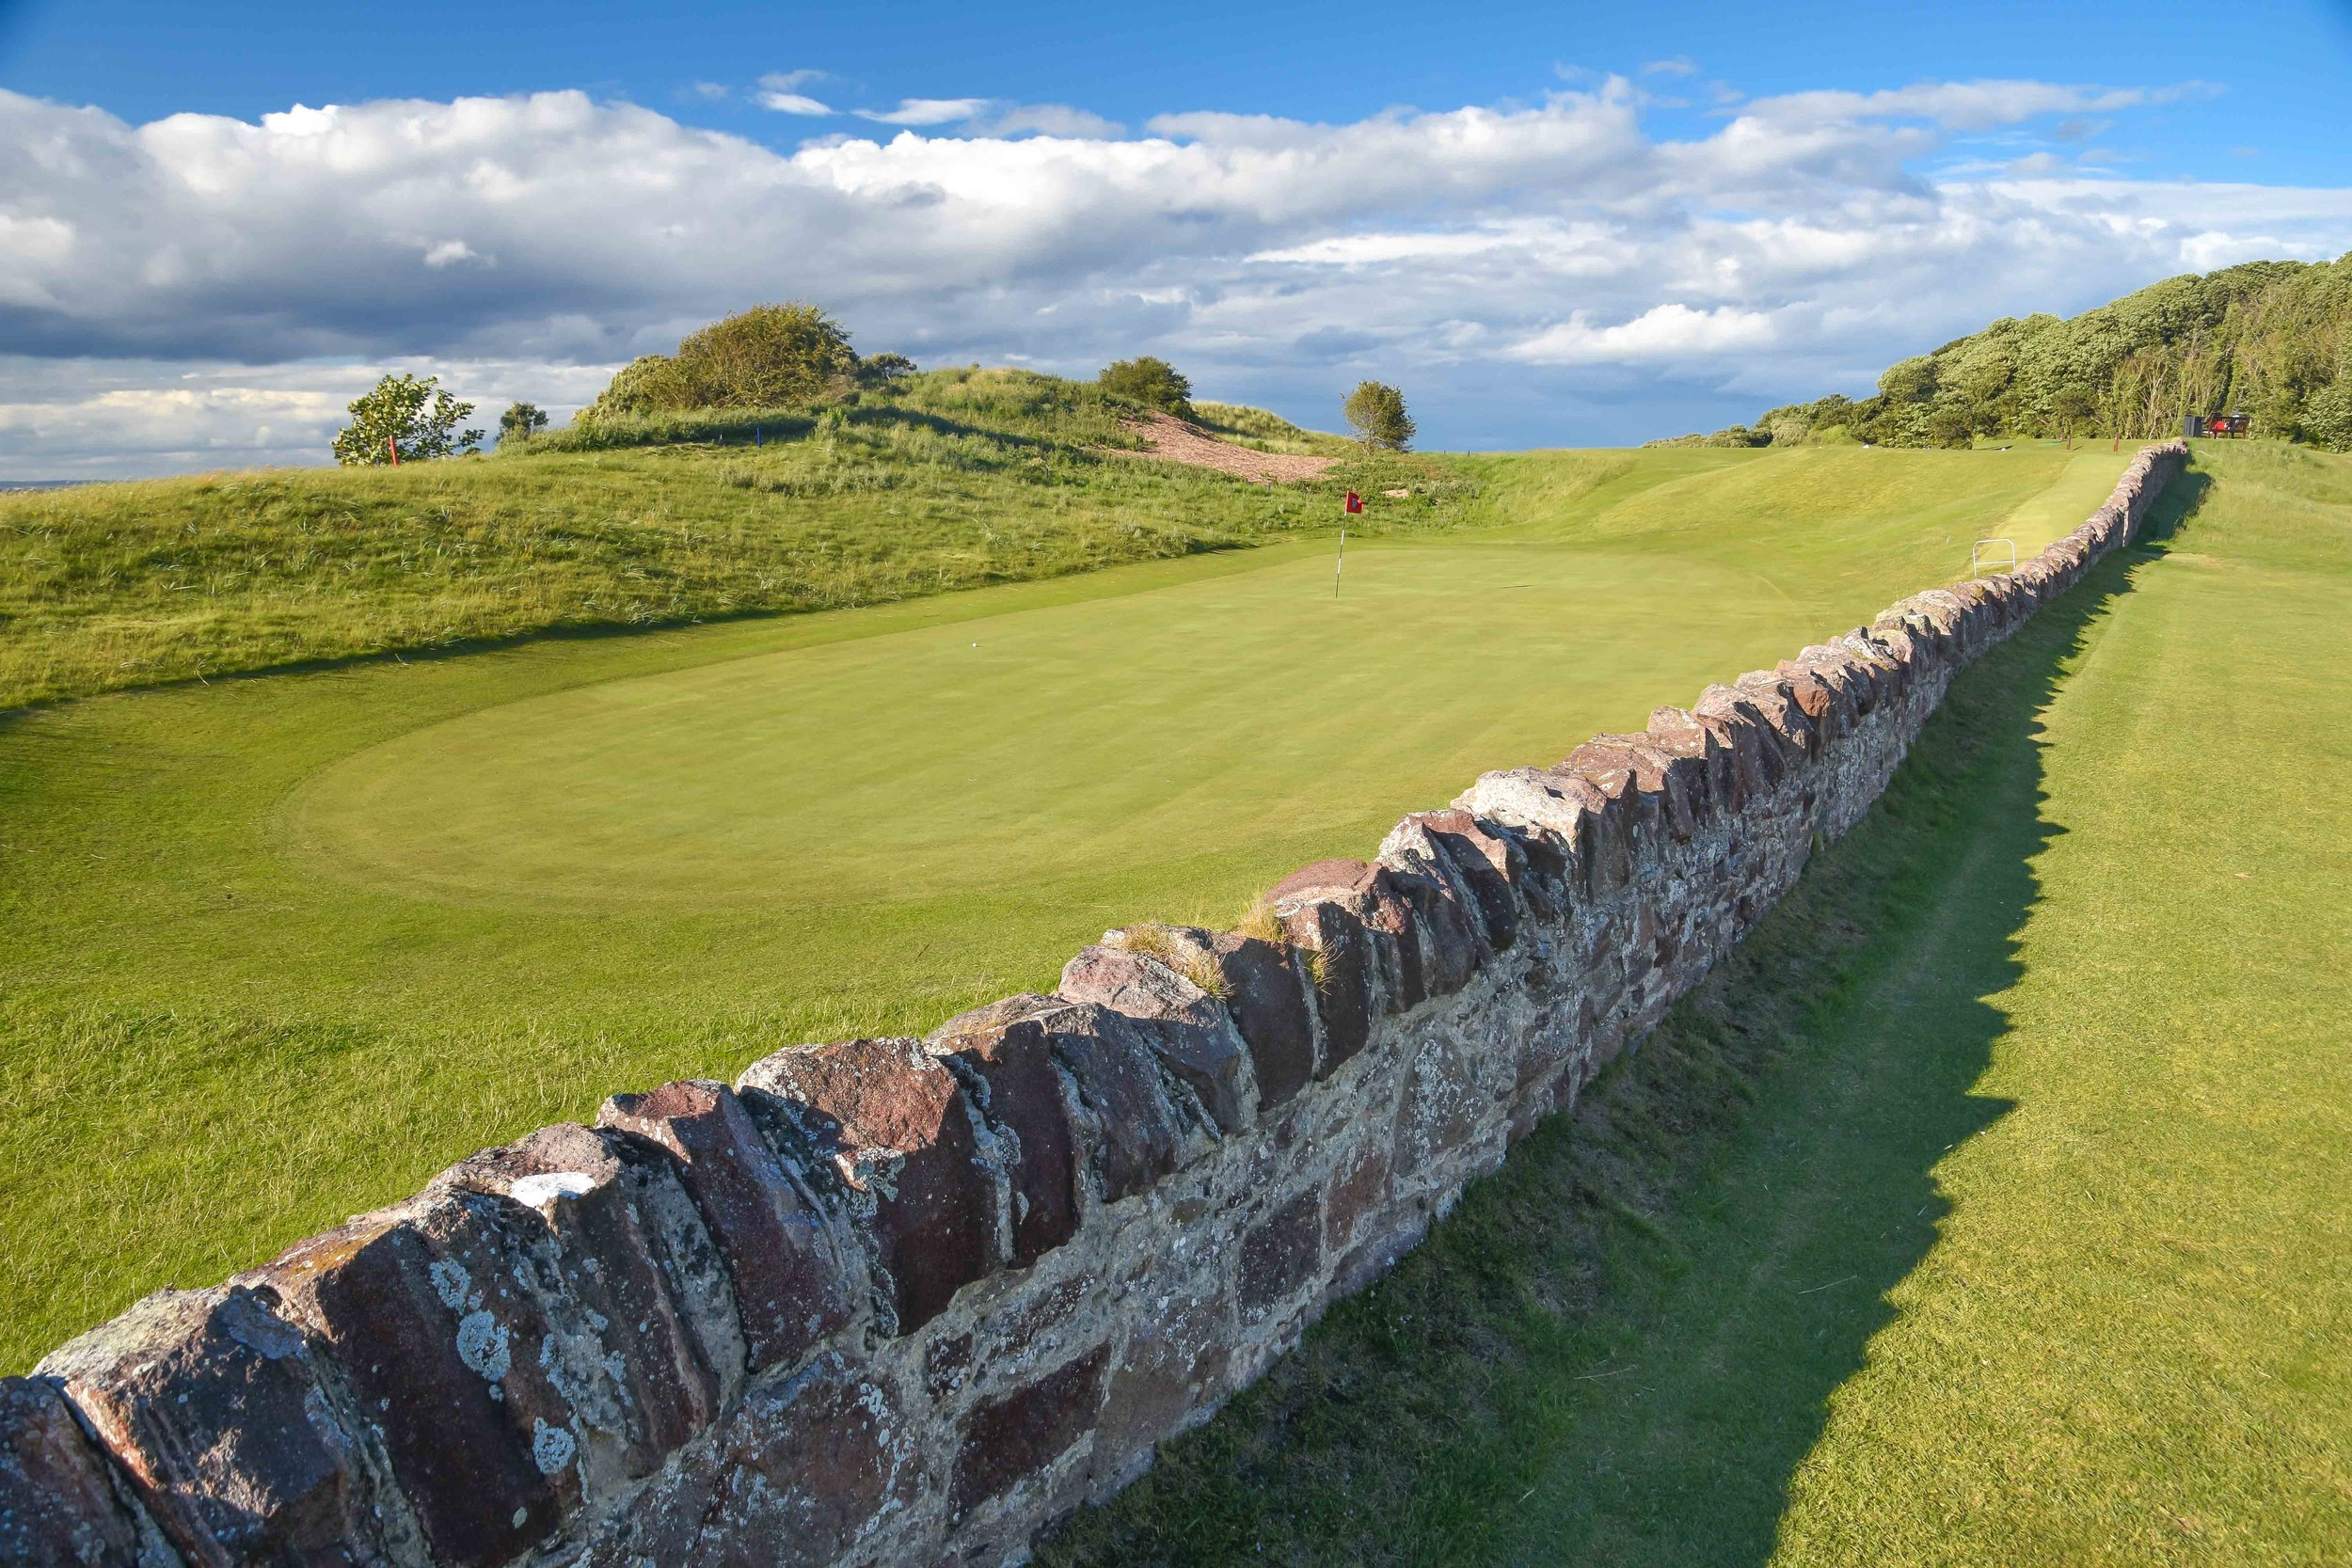 """The Pit"" hole at North Berwick is as fun as any other golf hole in the world."